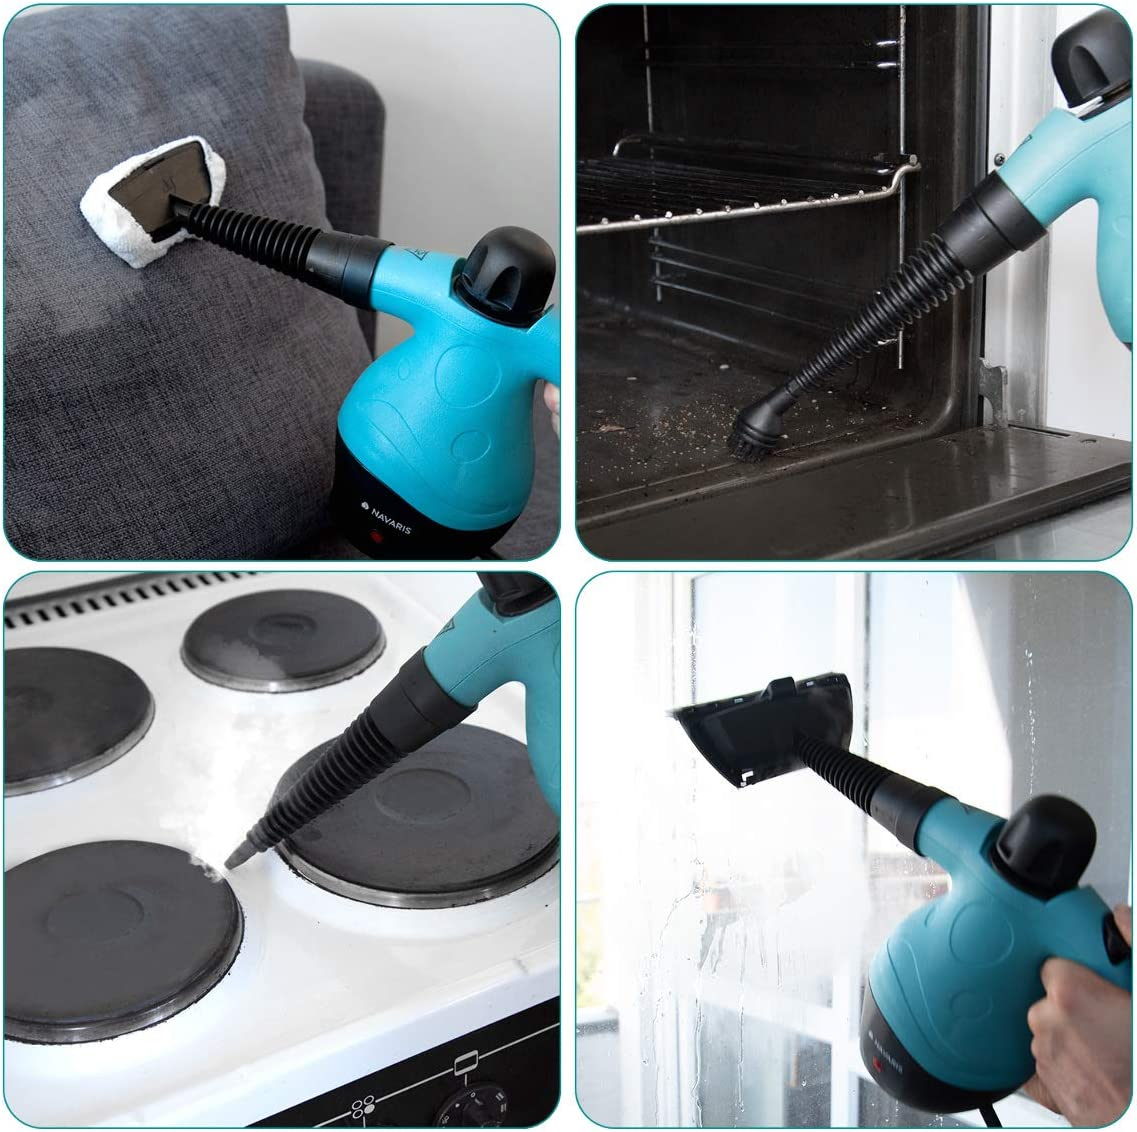 Navaris Handheld Steam Cleaner Multi Purpose Cleaning Hand Held Portable High Pressure Steamer for Bathroom Tile Oven With Accessories Window